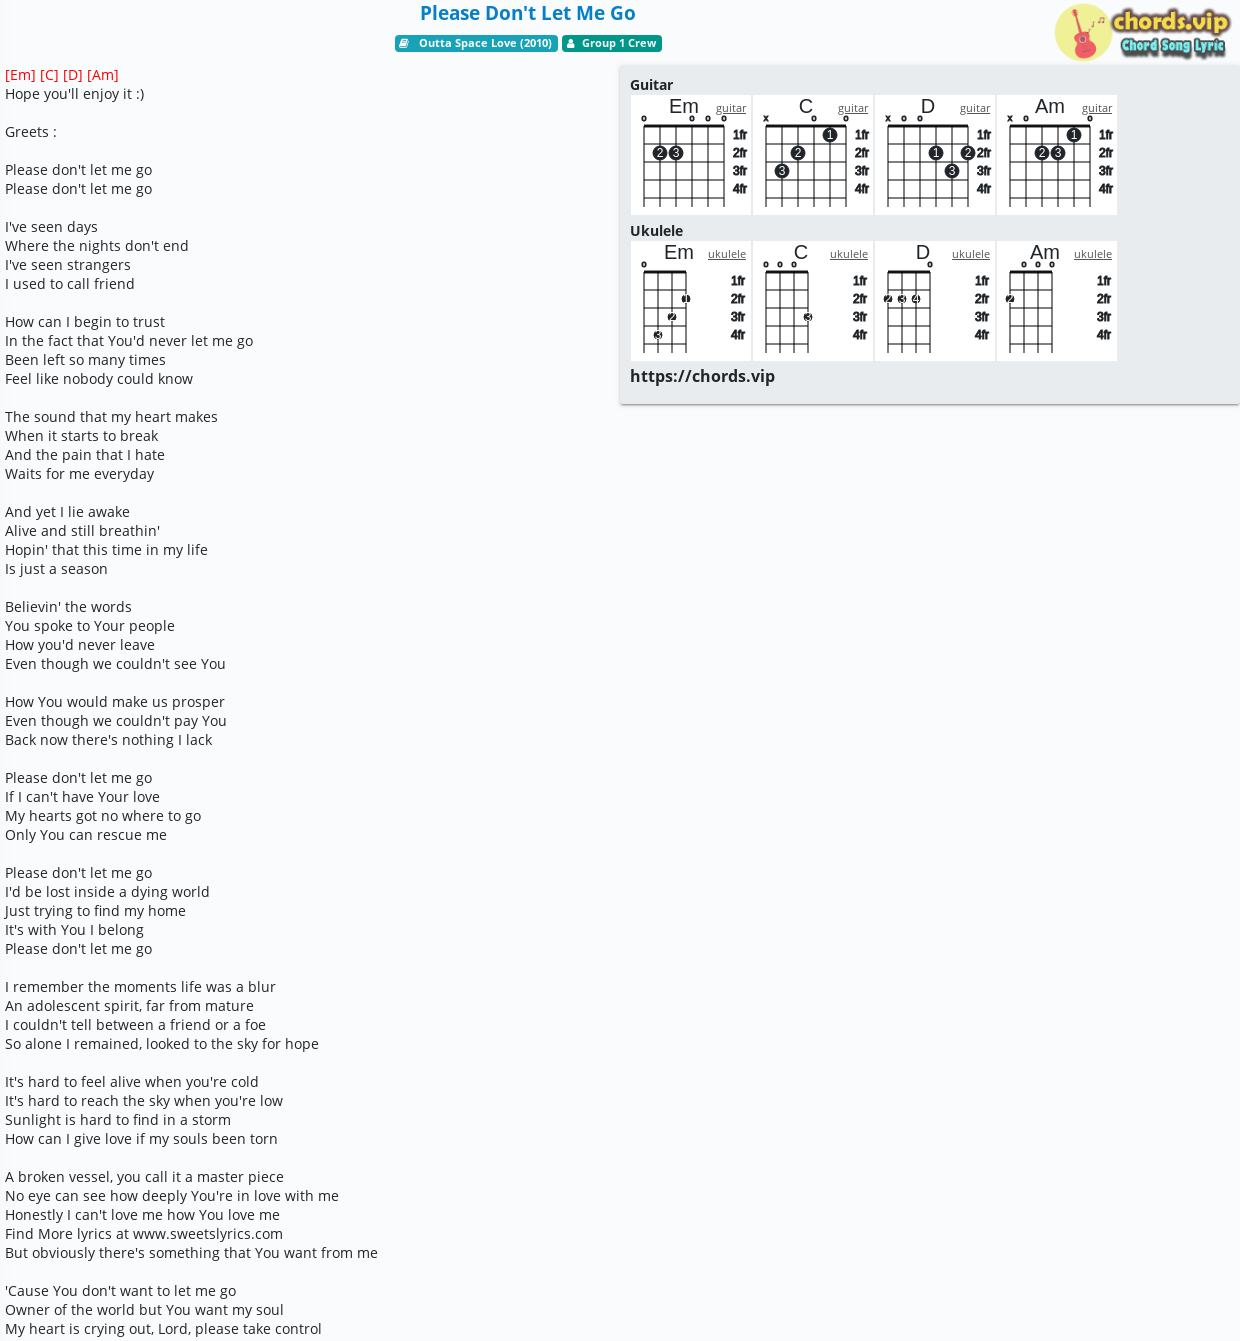 Chord Please Don't Let Me Go   Group 15 Crew   tab, song lyric ...